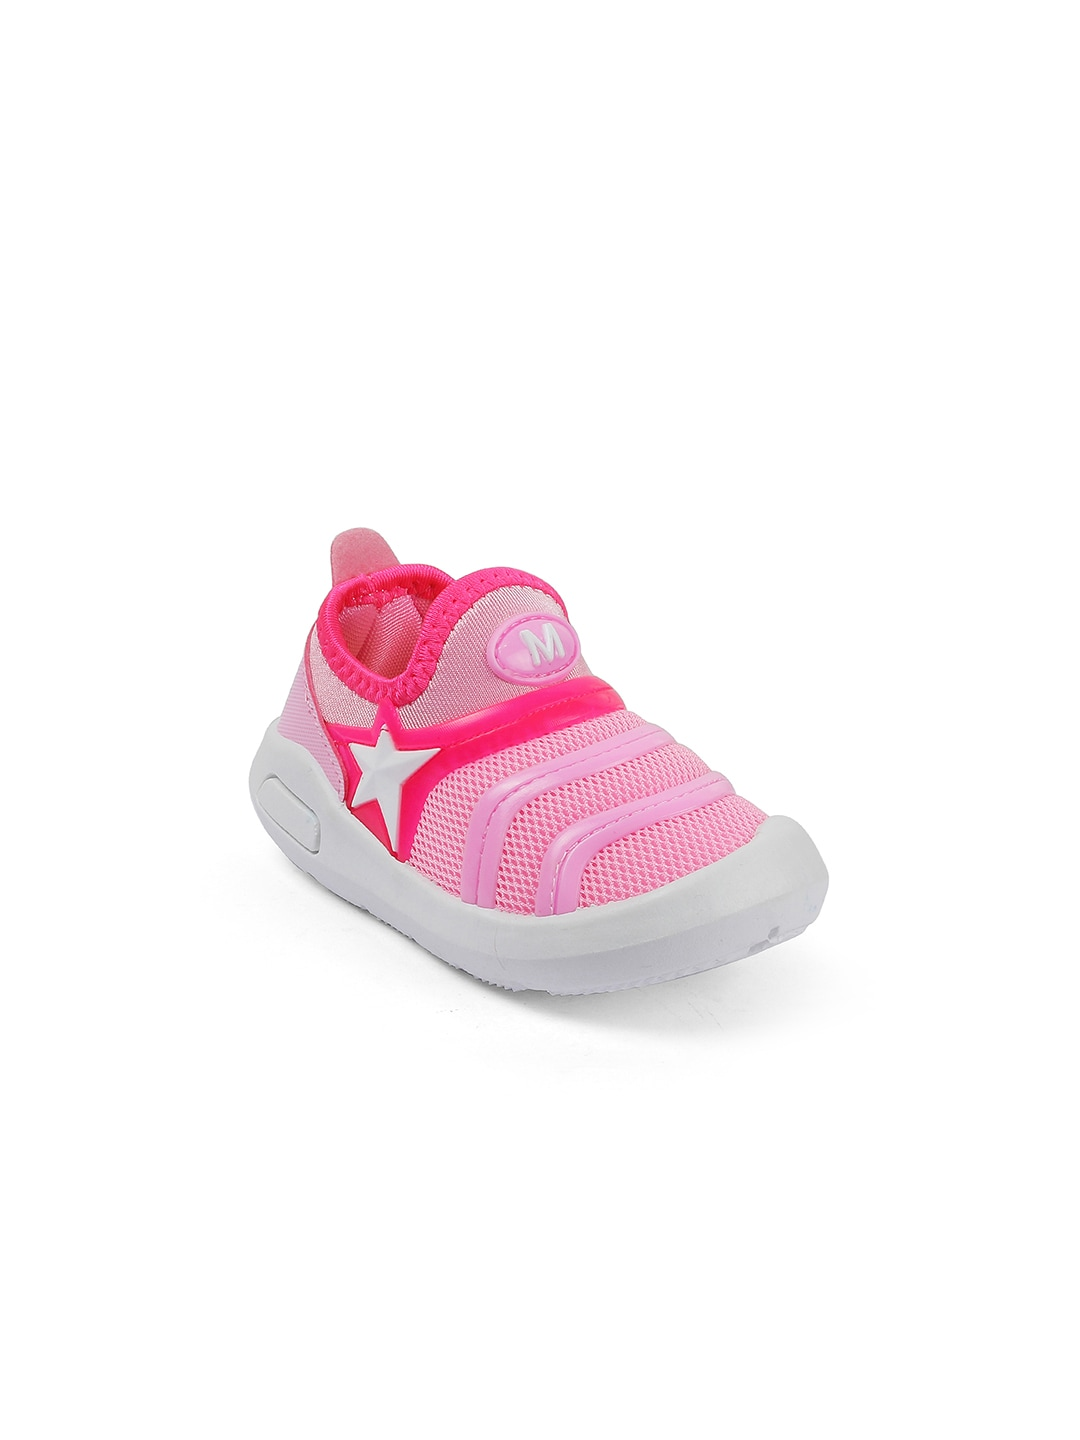 ab4360429bc2 Girls Shoes - Online Shopping of Shoes for Girls in India